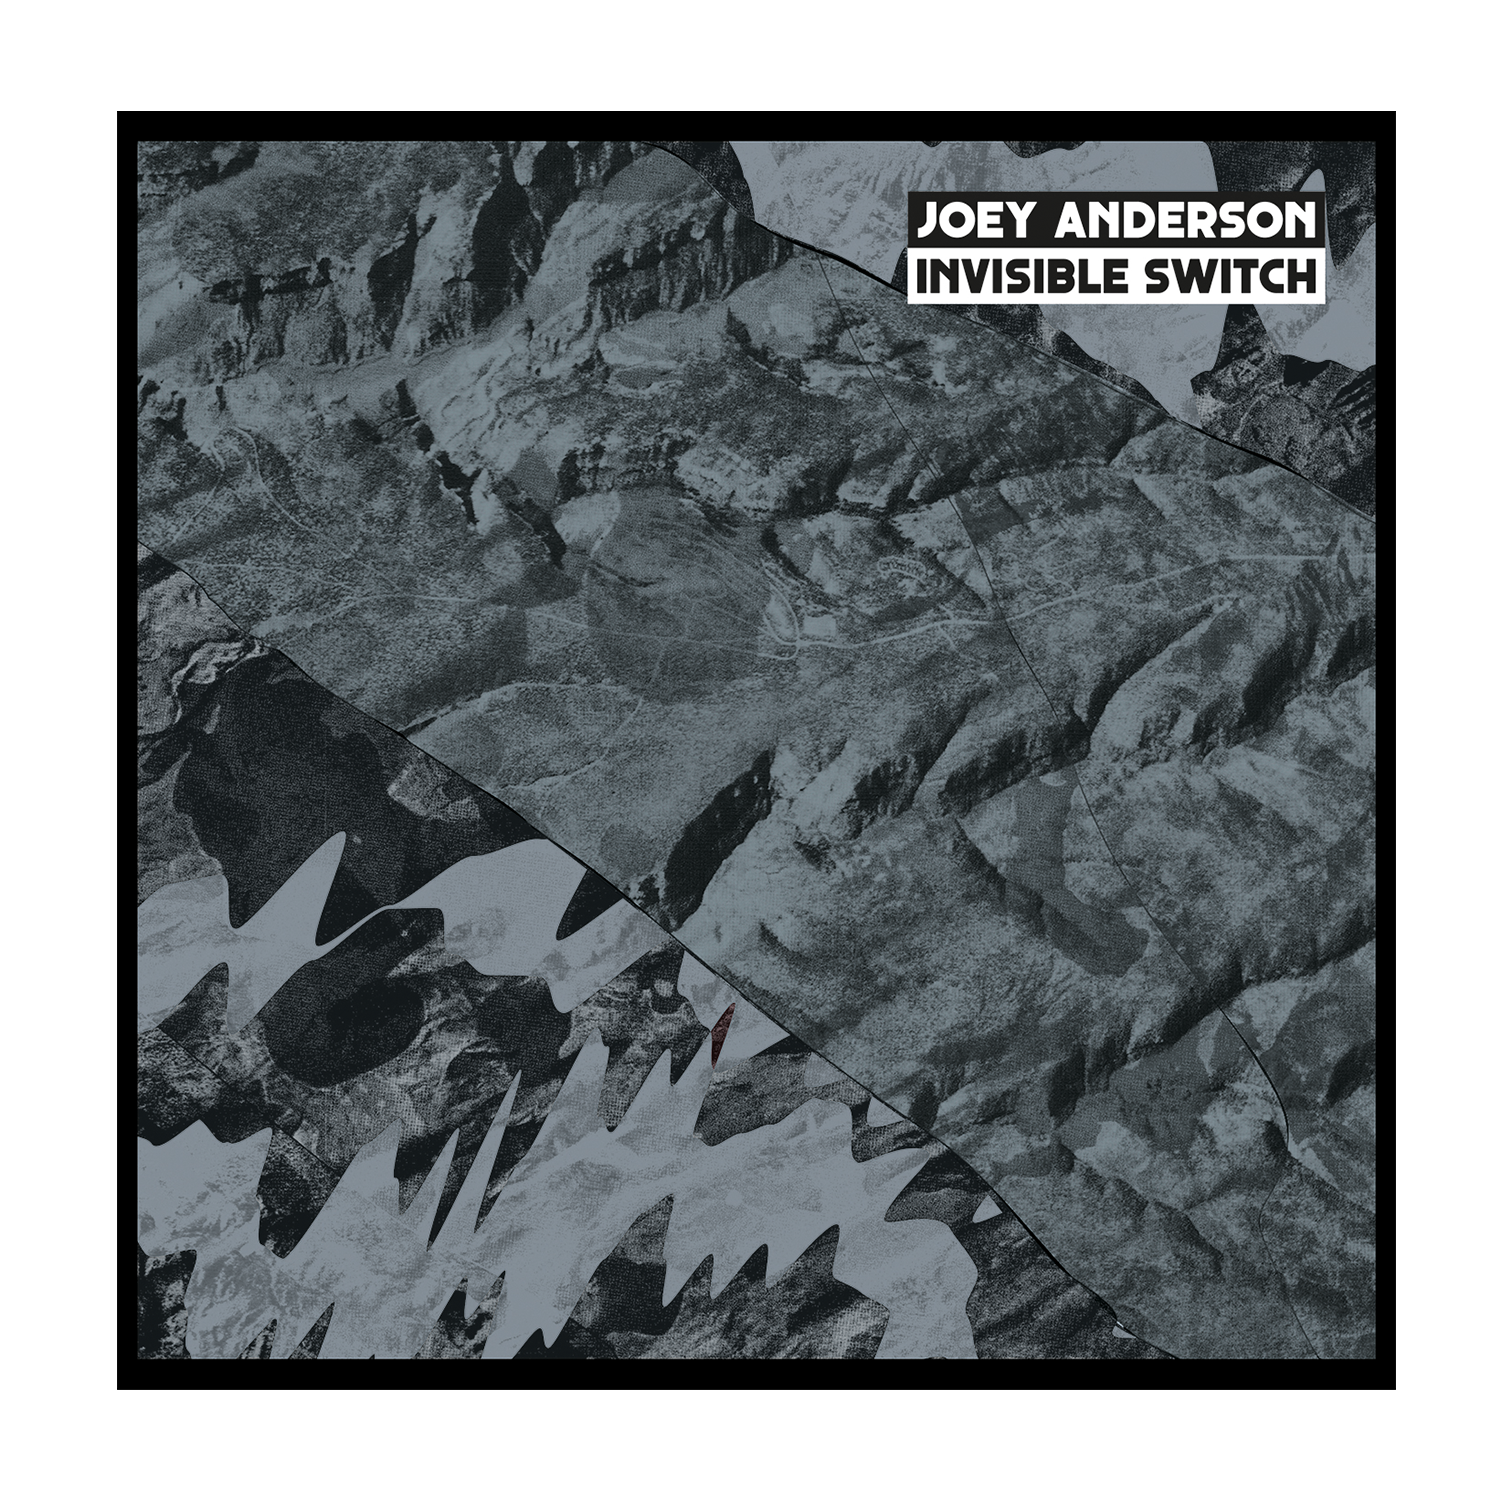 JOEY ANDERSON - INVISIBLE SWITC 12""